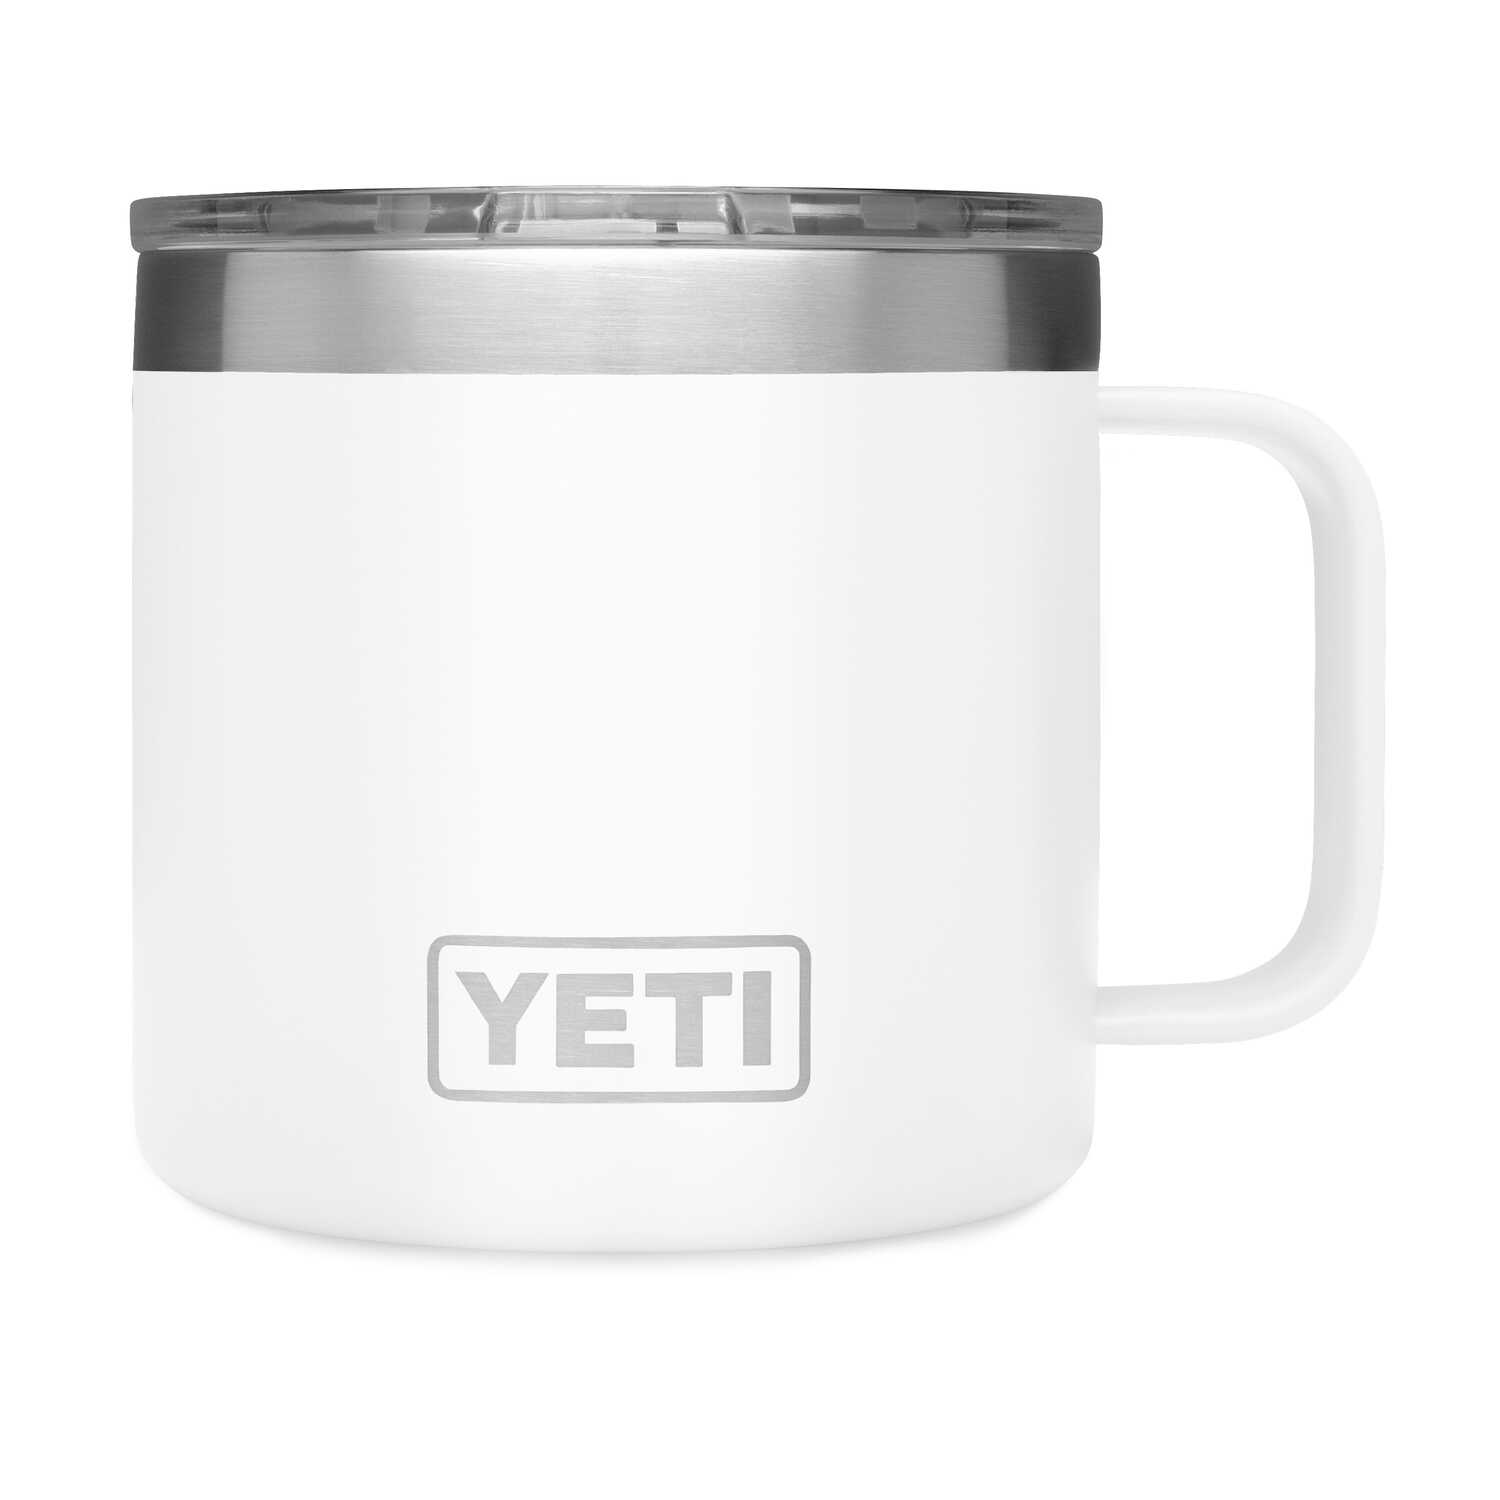 YETI  Rambler  White  Stainless Steel  Insulated Mug  BPA Free 14 oz.